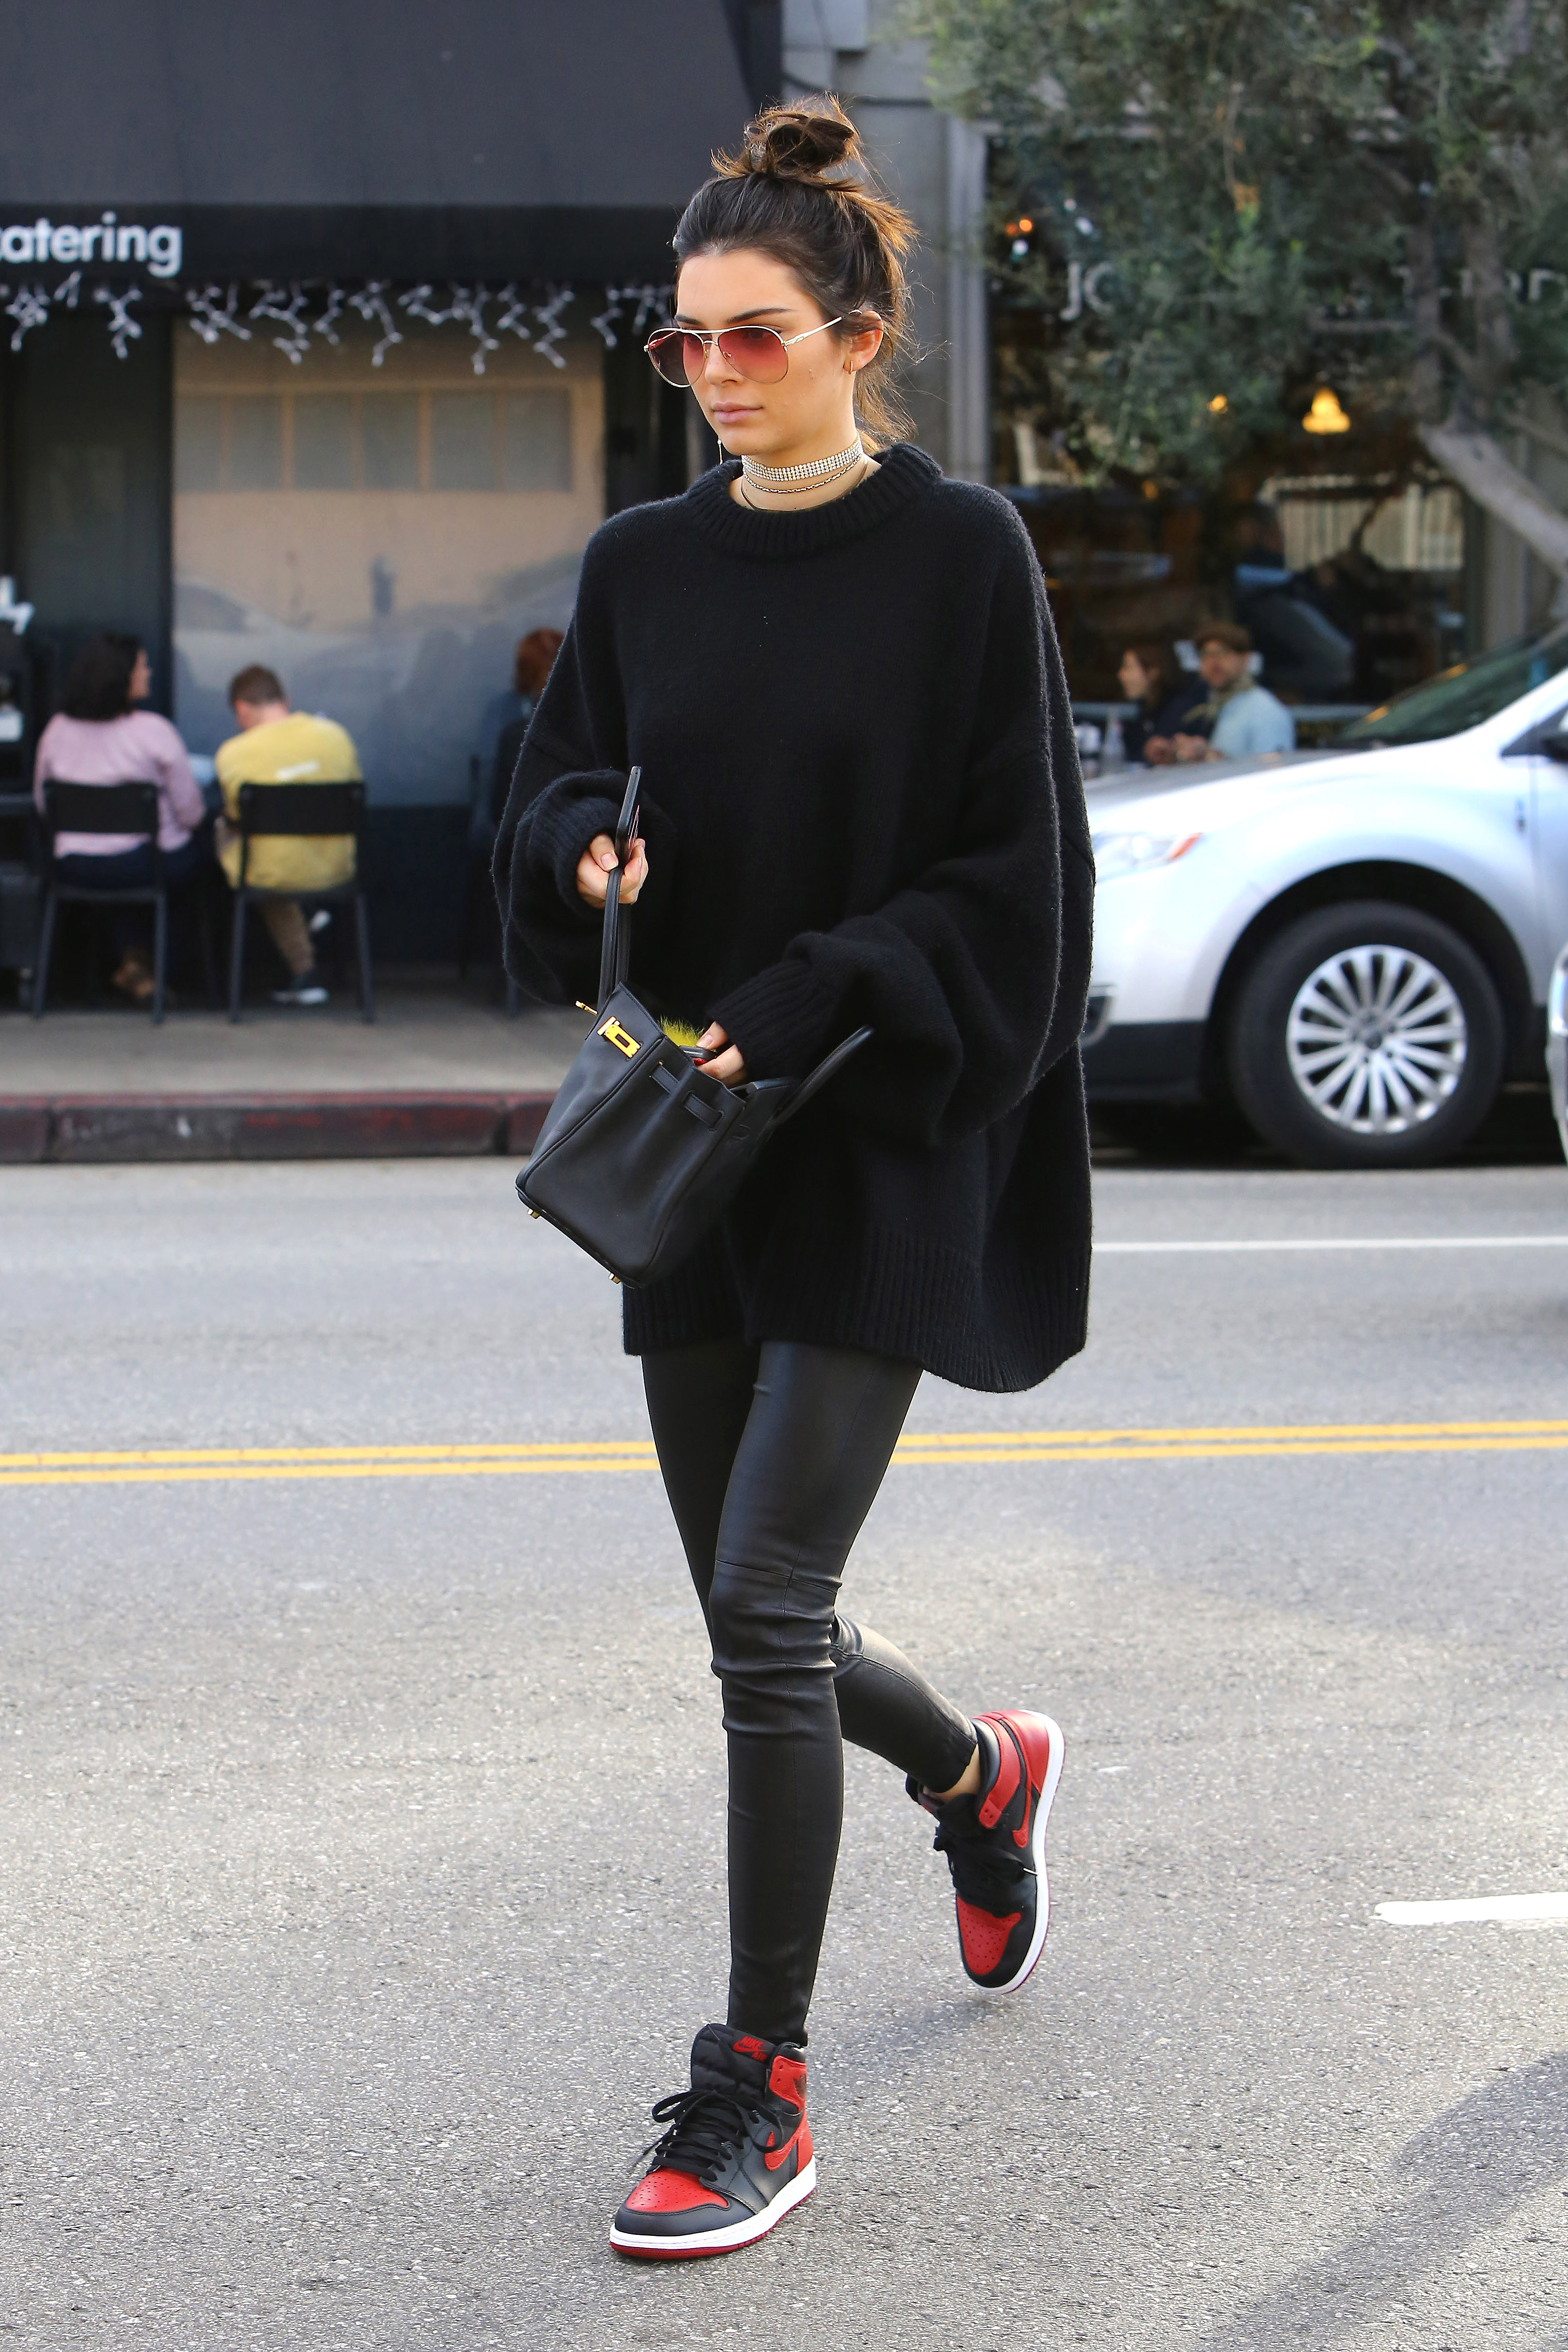 West Hollywood, CA - Kendall Jenner pays a visit to Joan's on Third. The brunette model is wearing leather leggings and an oversized knit sweater paired with Nike sneakers and a layered chokers.        December 22, 2016, Image: 309340243, License: Rights-managed, Restrictions: , Model Release: no, Credit line: Profimedia, AKM-GSI